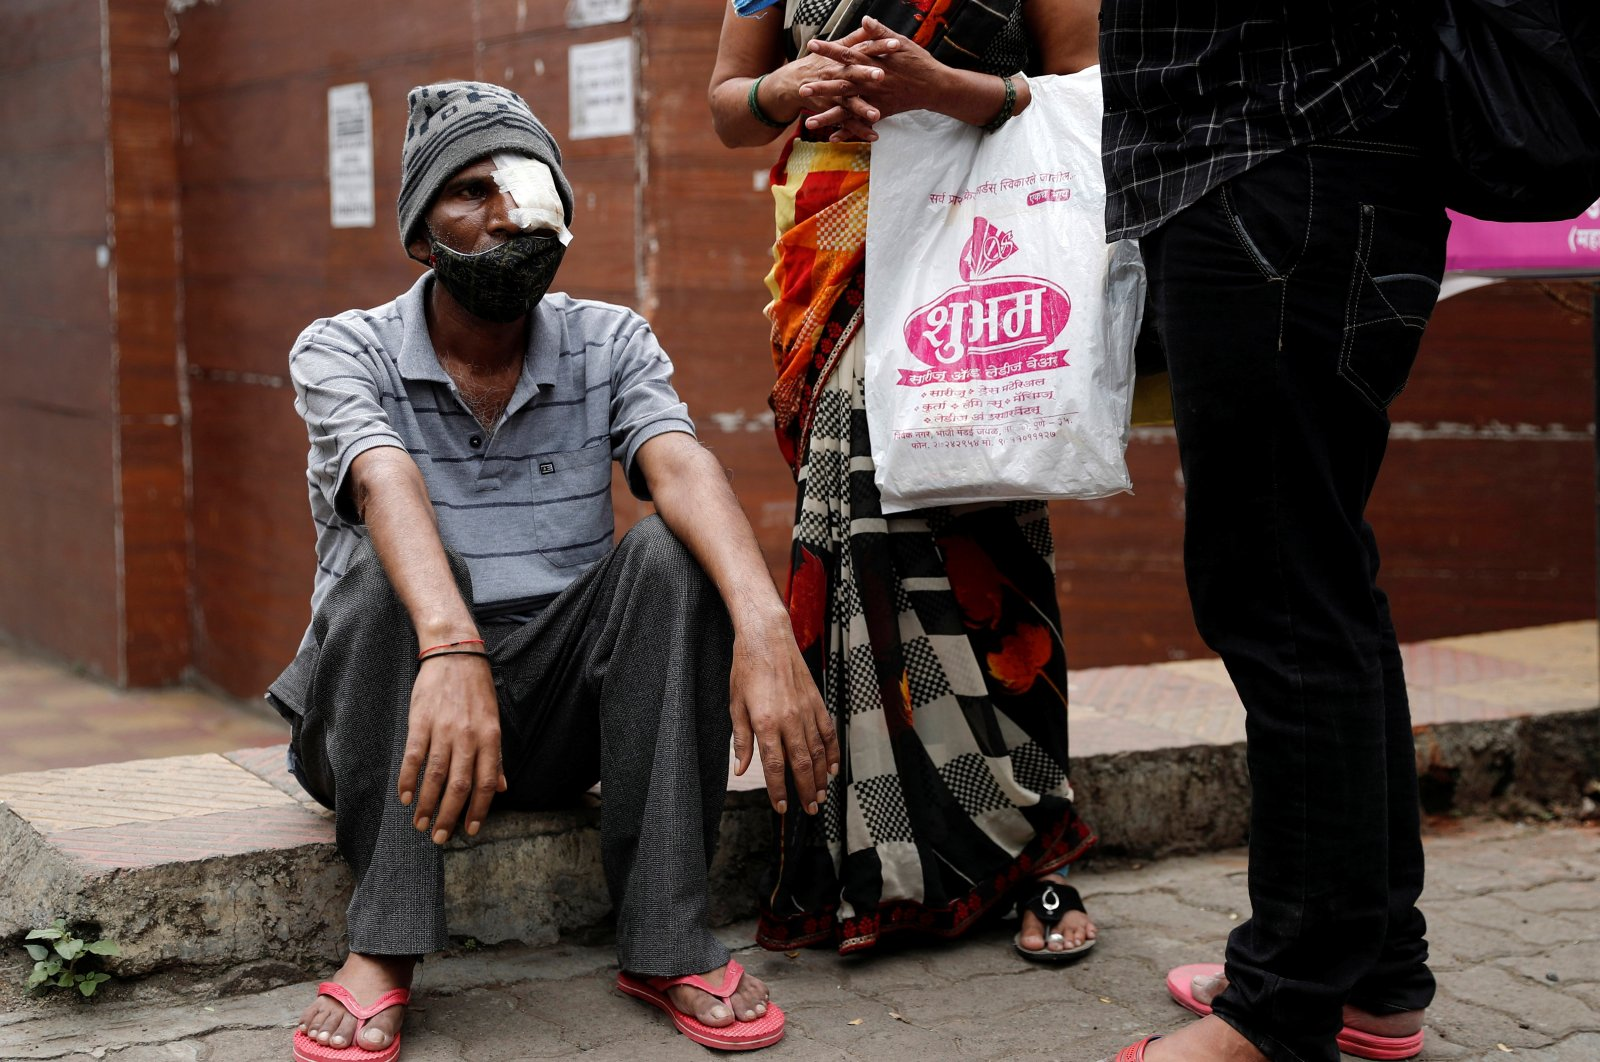 Shivaji Veer (L), 51, a school bus driver, accompanied by his wife Vimal Veer 46, waits to board a taxi to go home after a follow-up consultation at a hospital after losing his eye due to Mucormycosis, also known as black fungus, in Pune, India, July 1, 2021. (Reuters Photo)